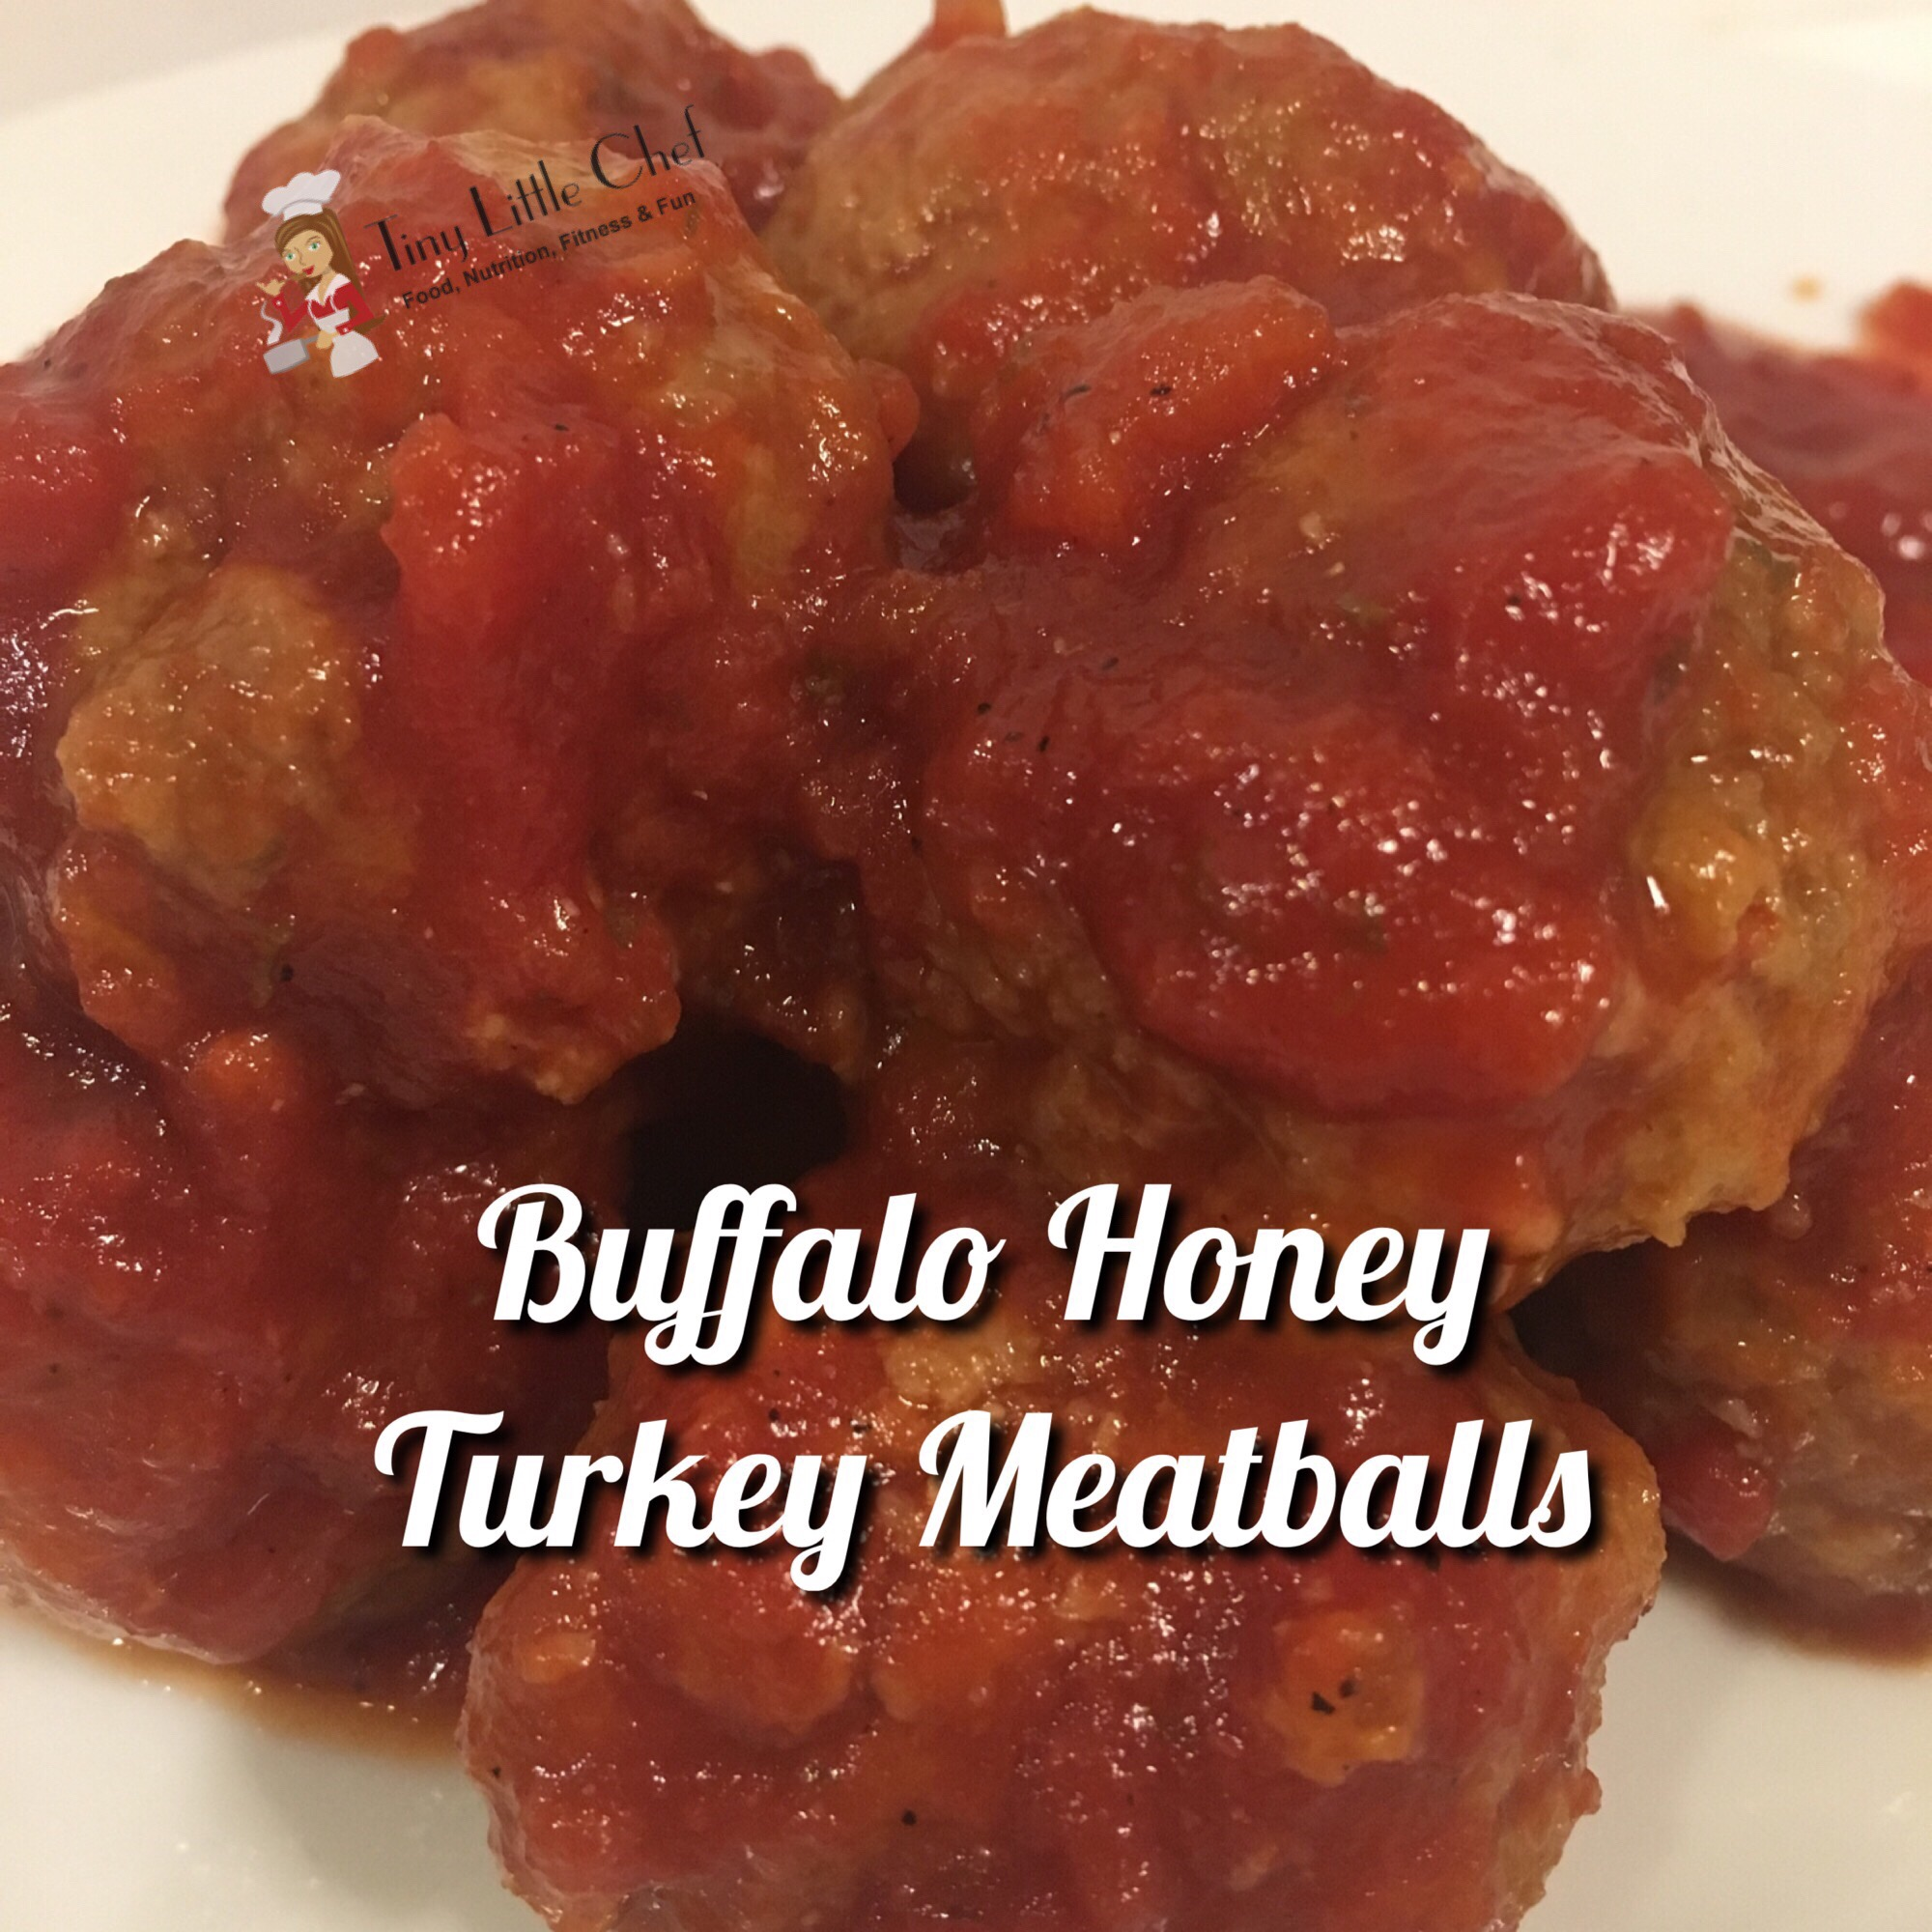 Tiny Little Chef Buffalo Honey Turkey Meatballs